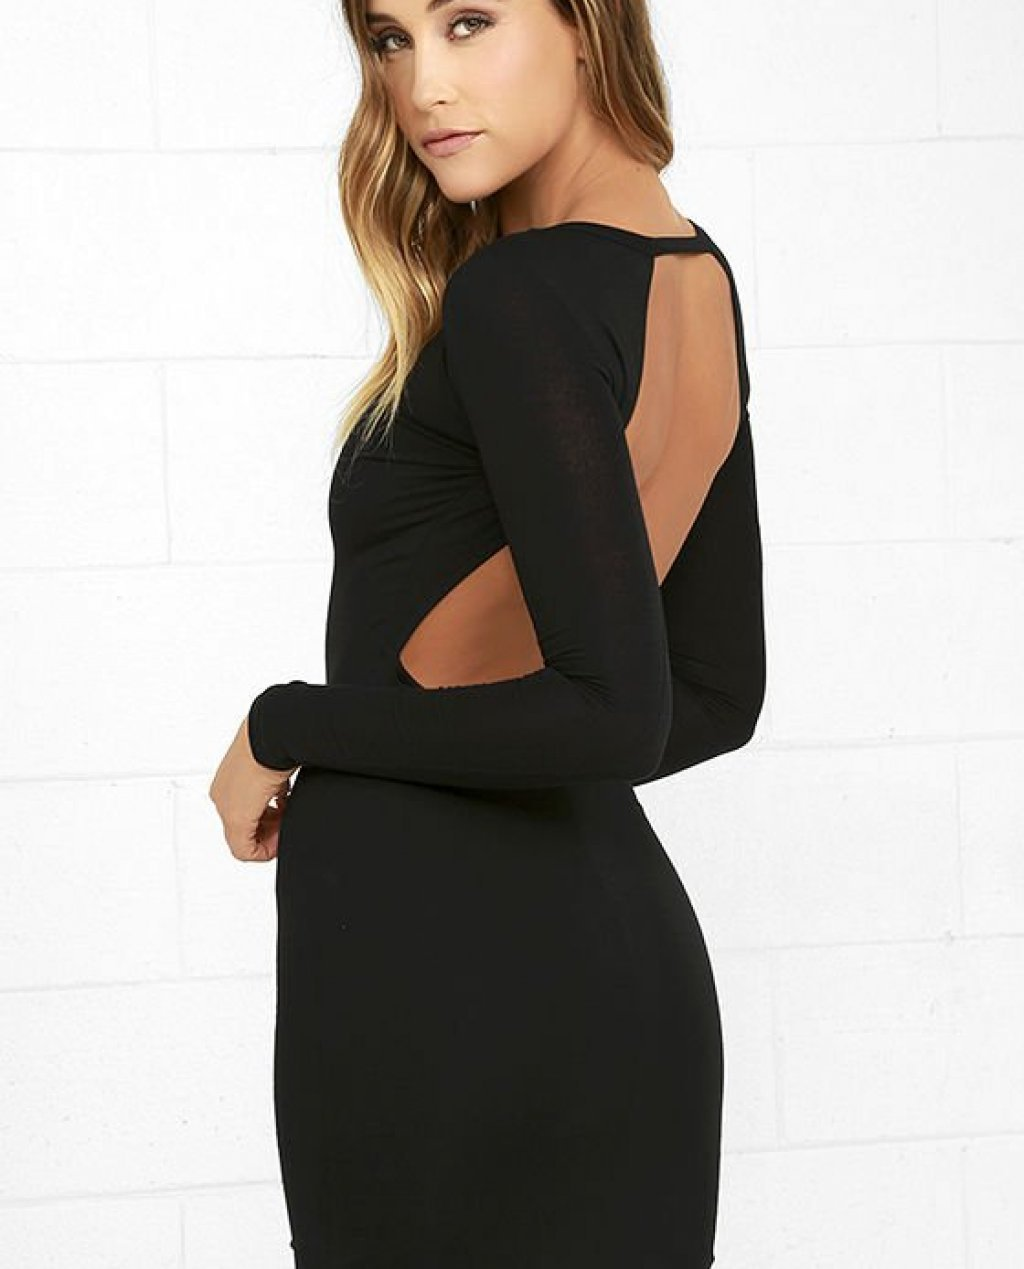 Here to Party Black Long Sleeve Bodycon Dress